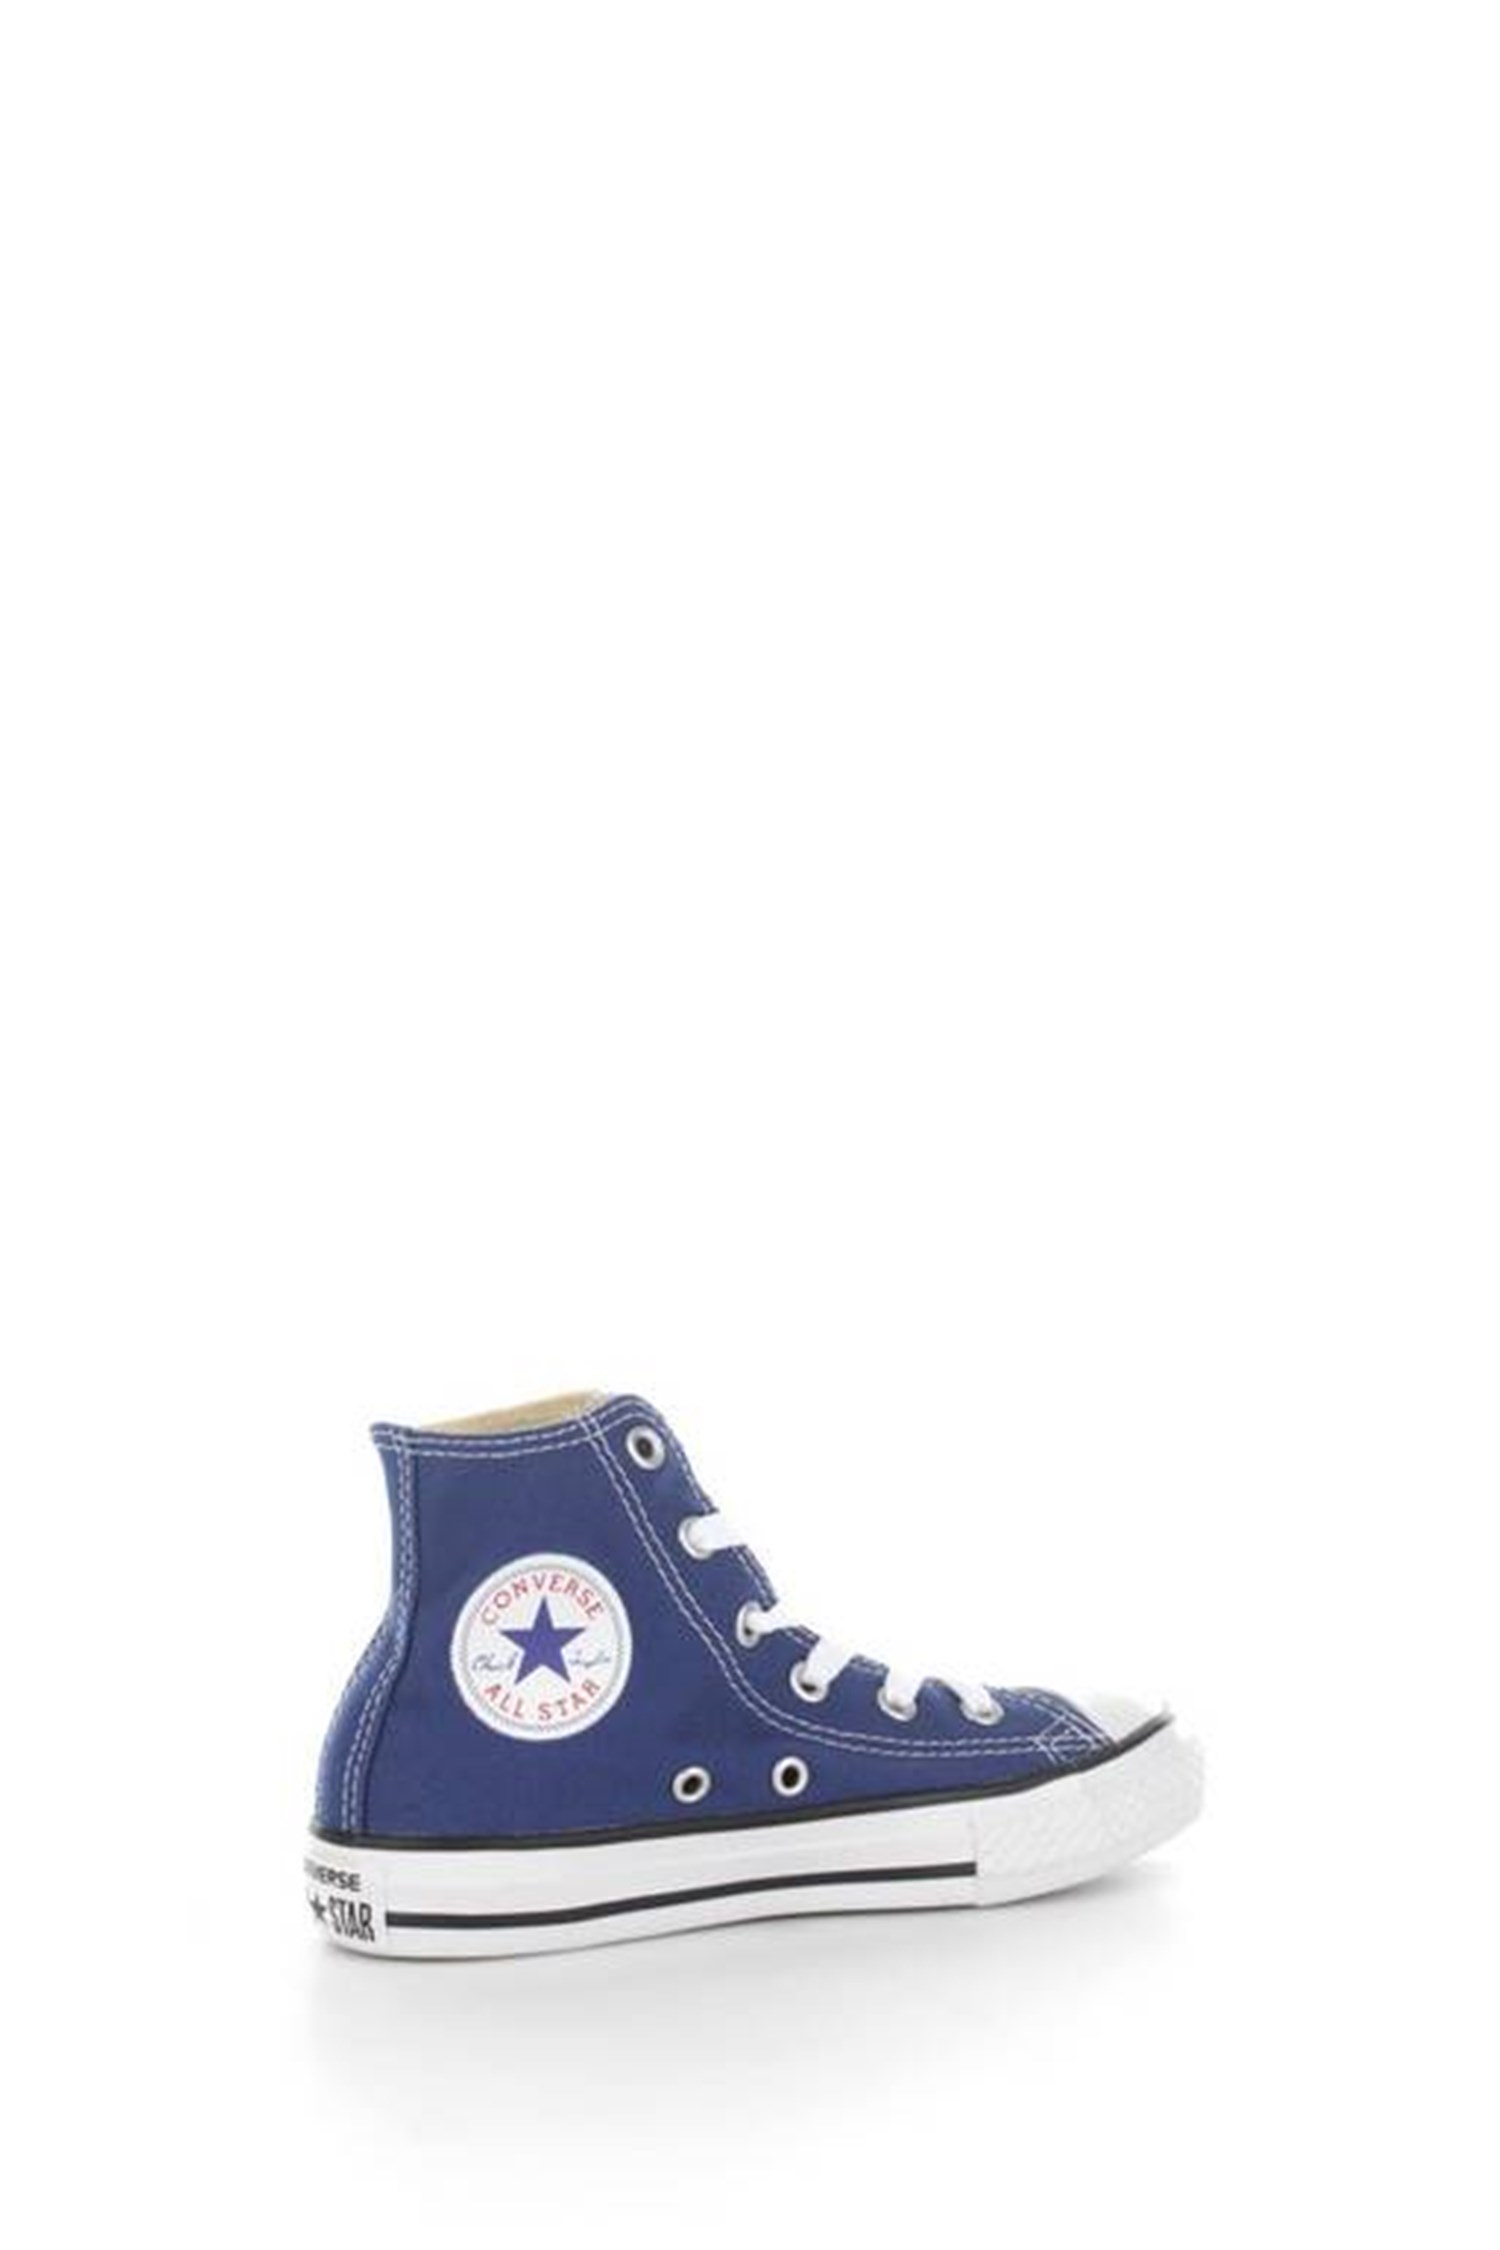 Converse Shoes Child high LIGHT BLUE 351168C